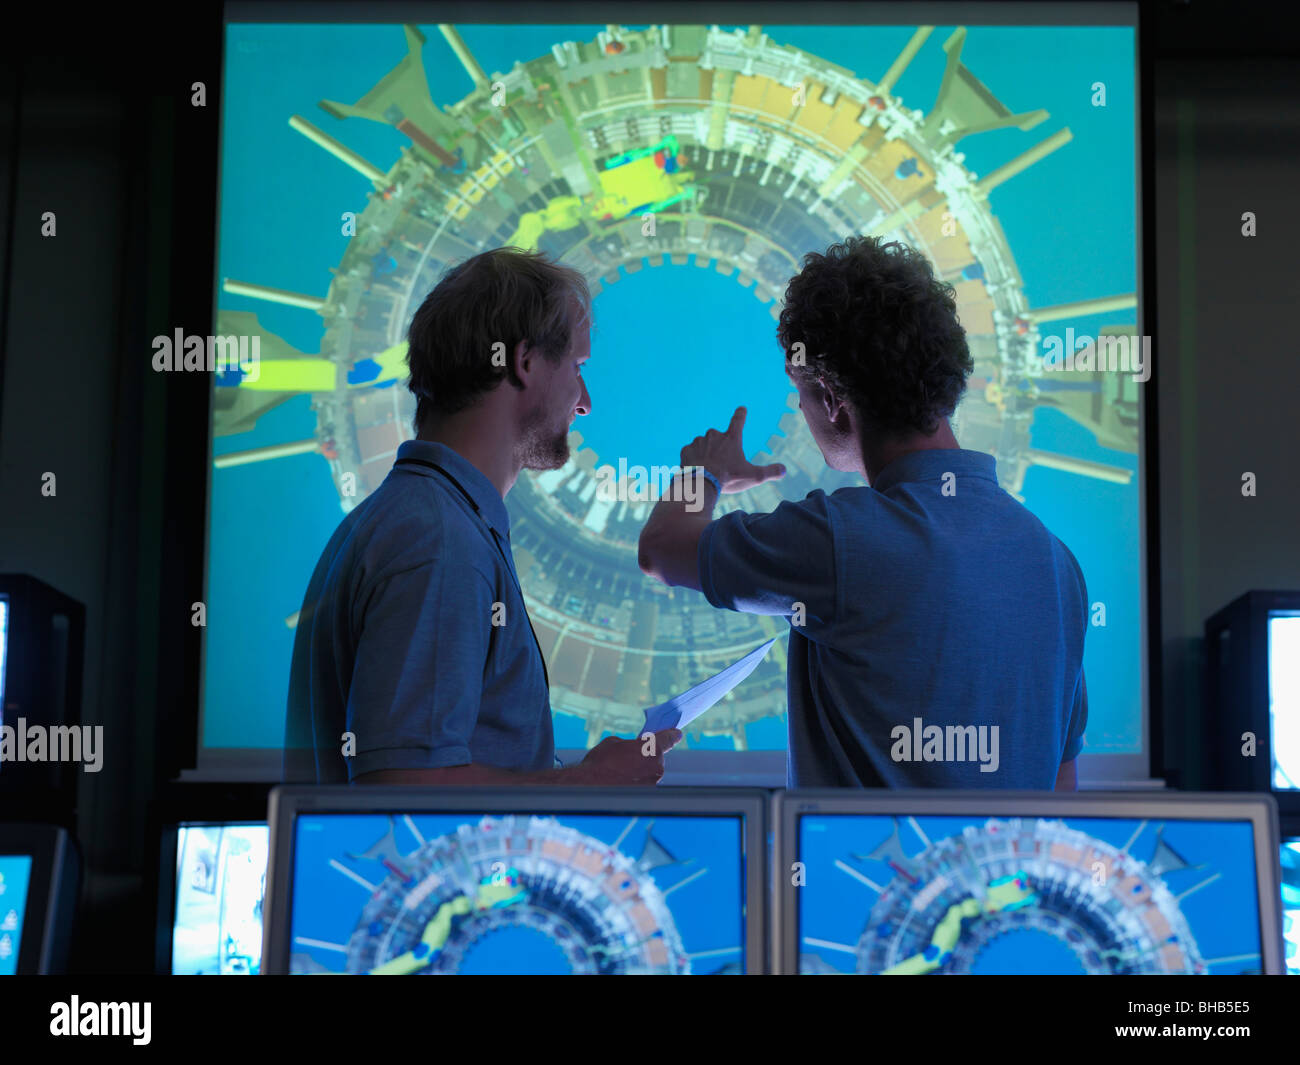 Fusion Reactor Scientists With Screens - Stock Image